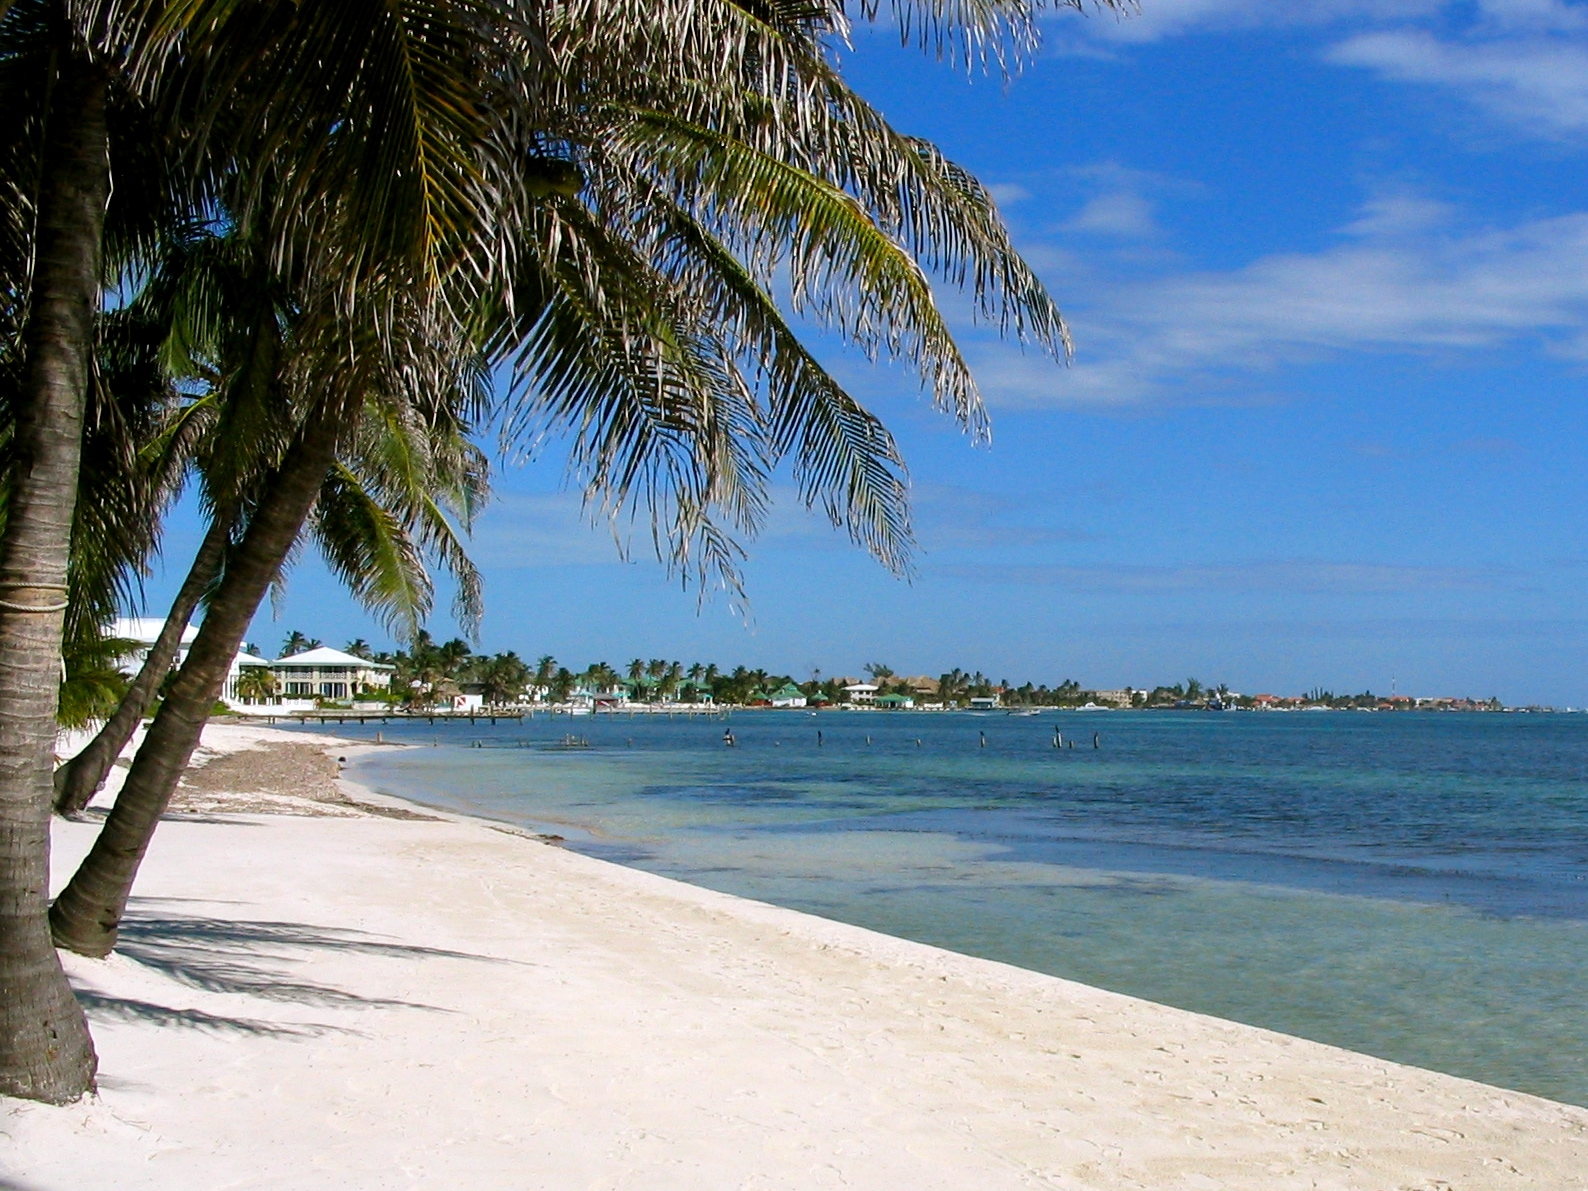 Ambergris Caye - Caribbean Vacation - Belize Beach Resorts - All inclusive Vacation Packages - SabreWing Travel